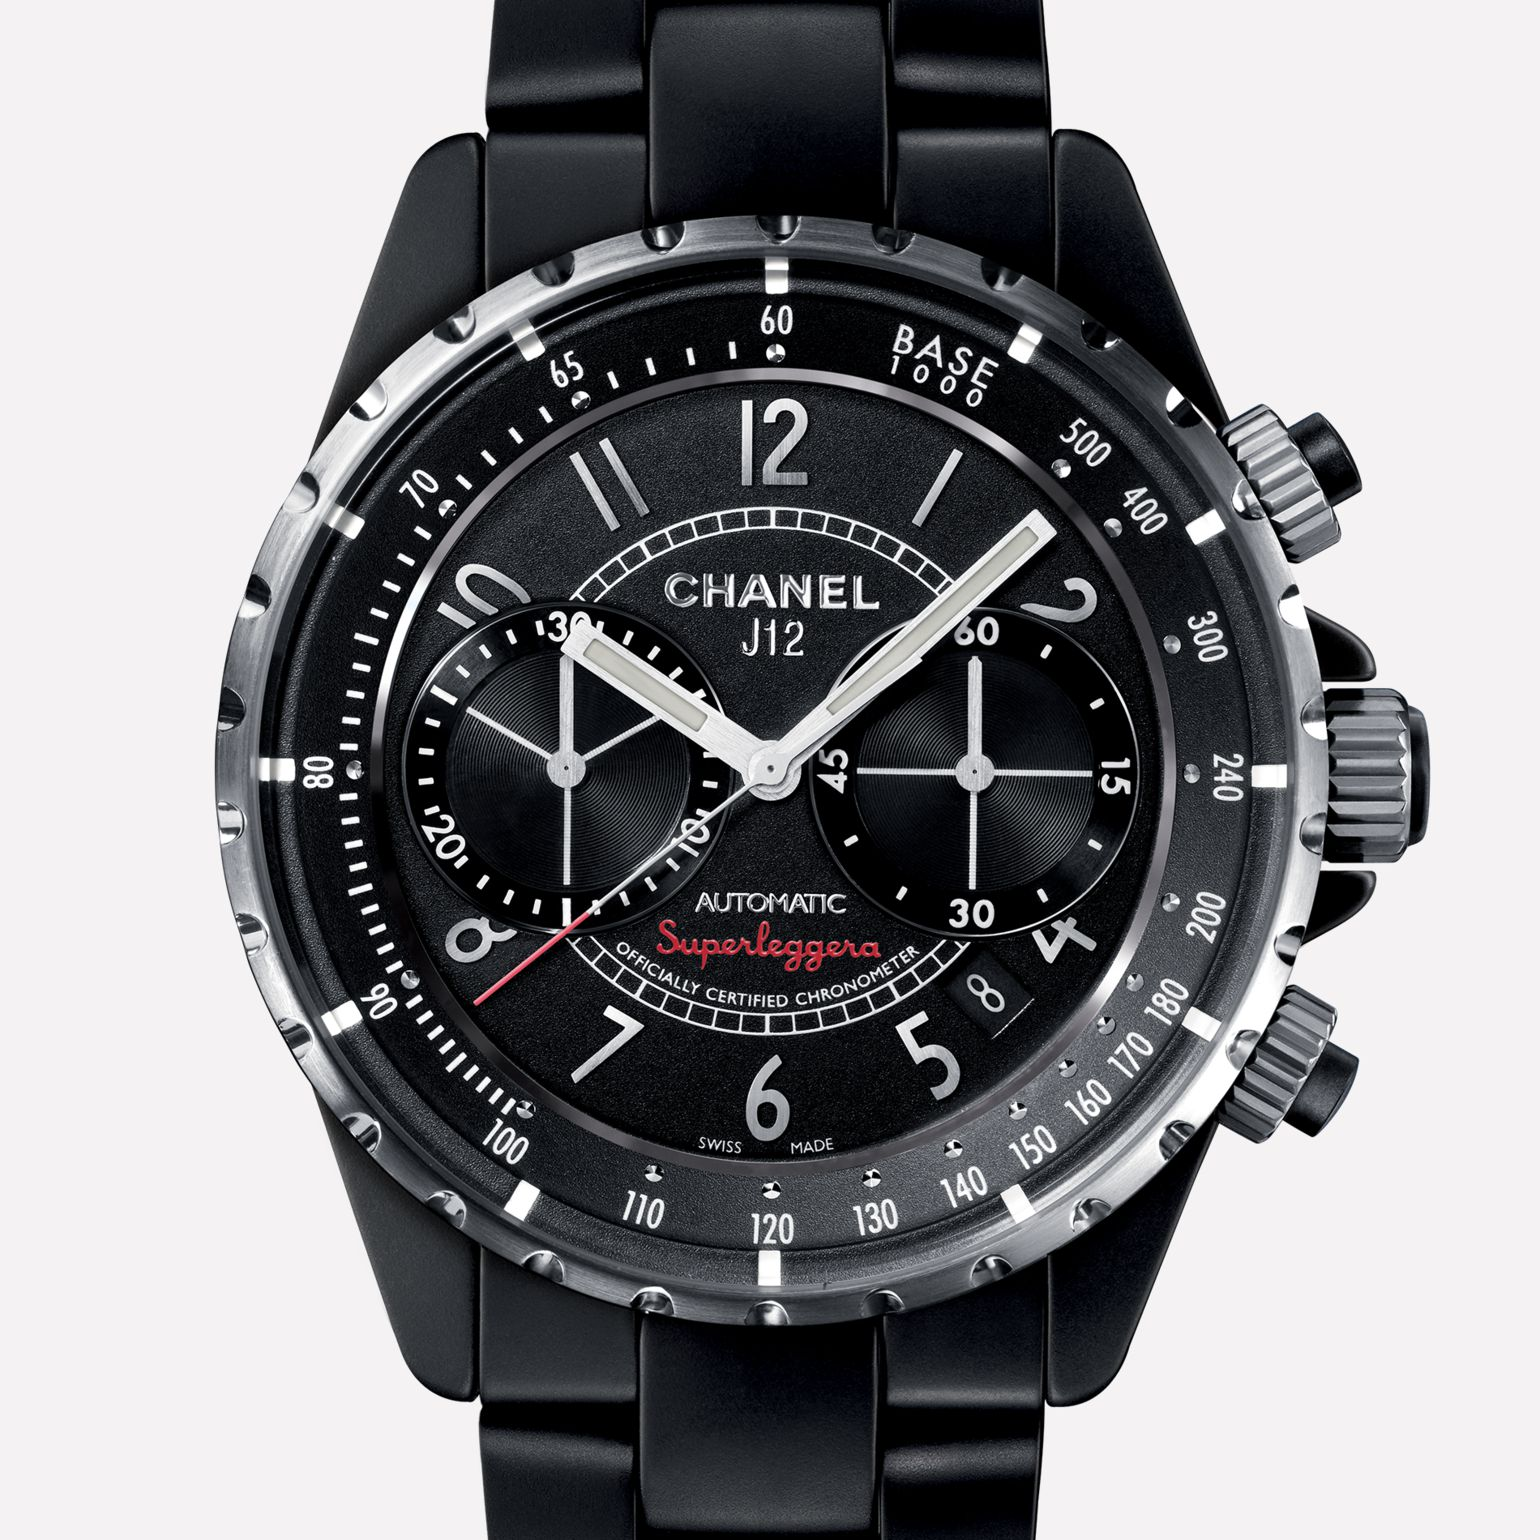 J12 SUPERLEGGERA CHRONOGRAPH Matt black ceramic and steel